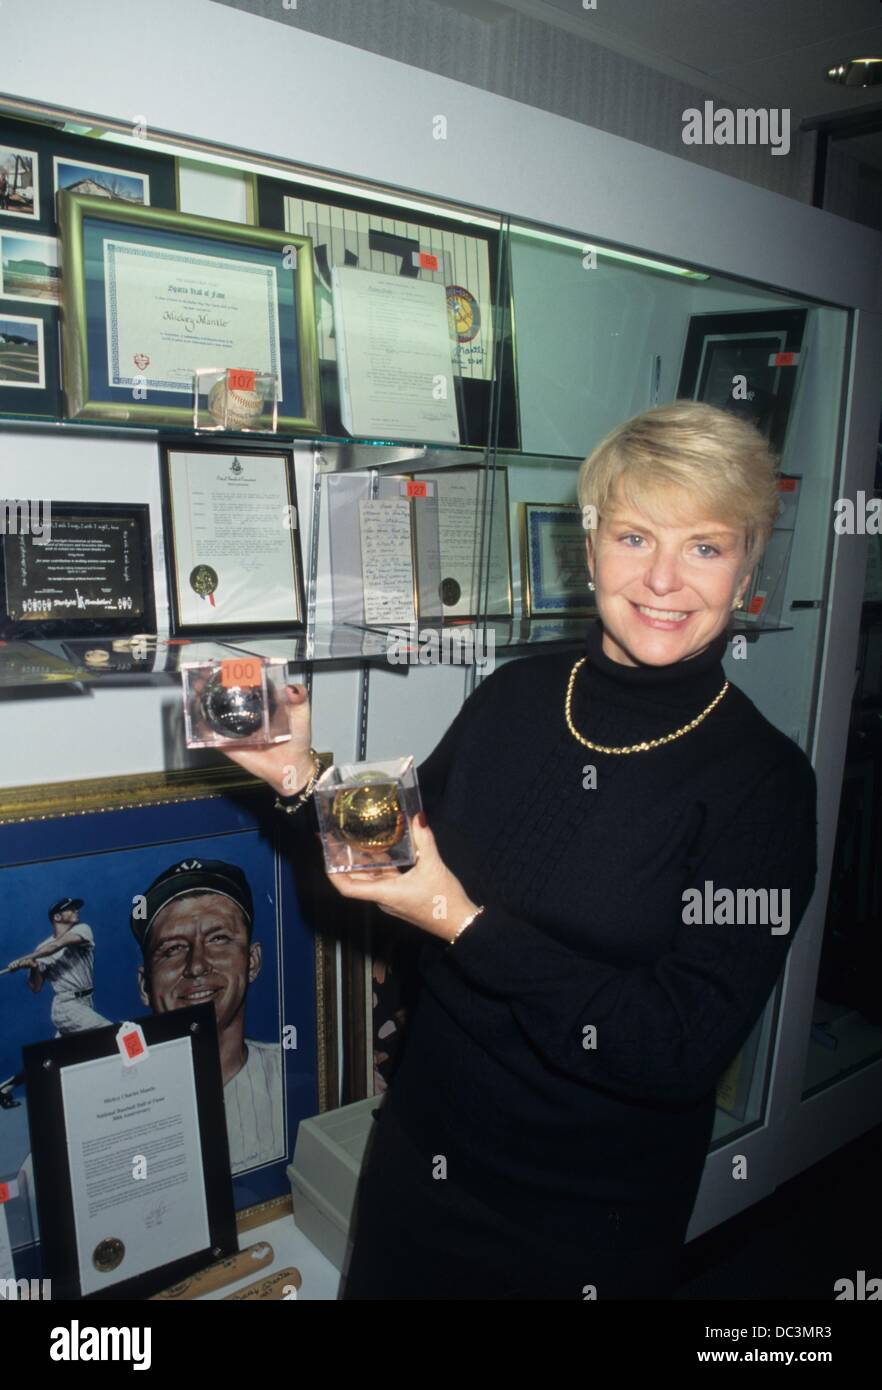 GREER JOHNSON with Mickey Mantle collection at South Gate Hotel in